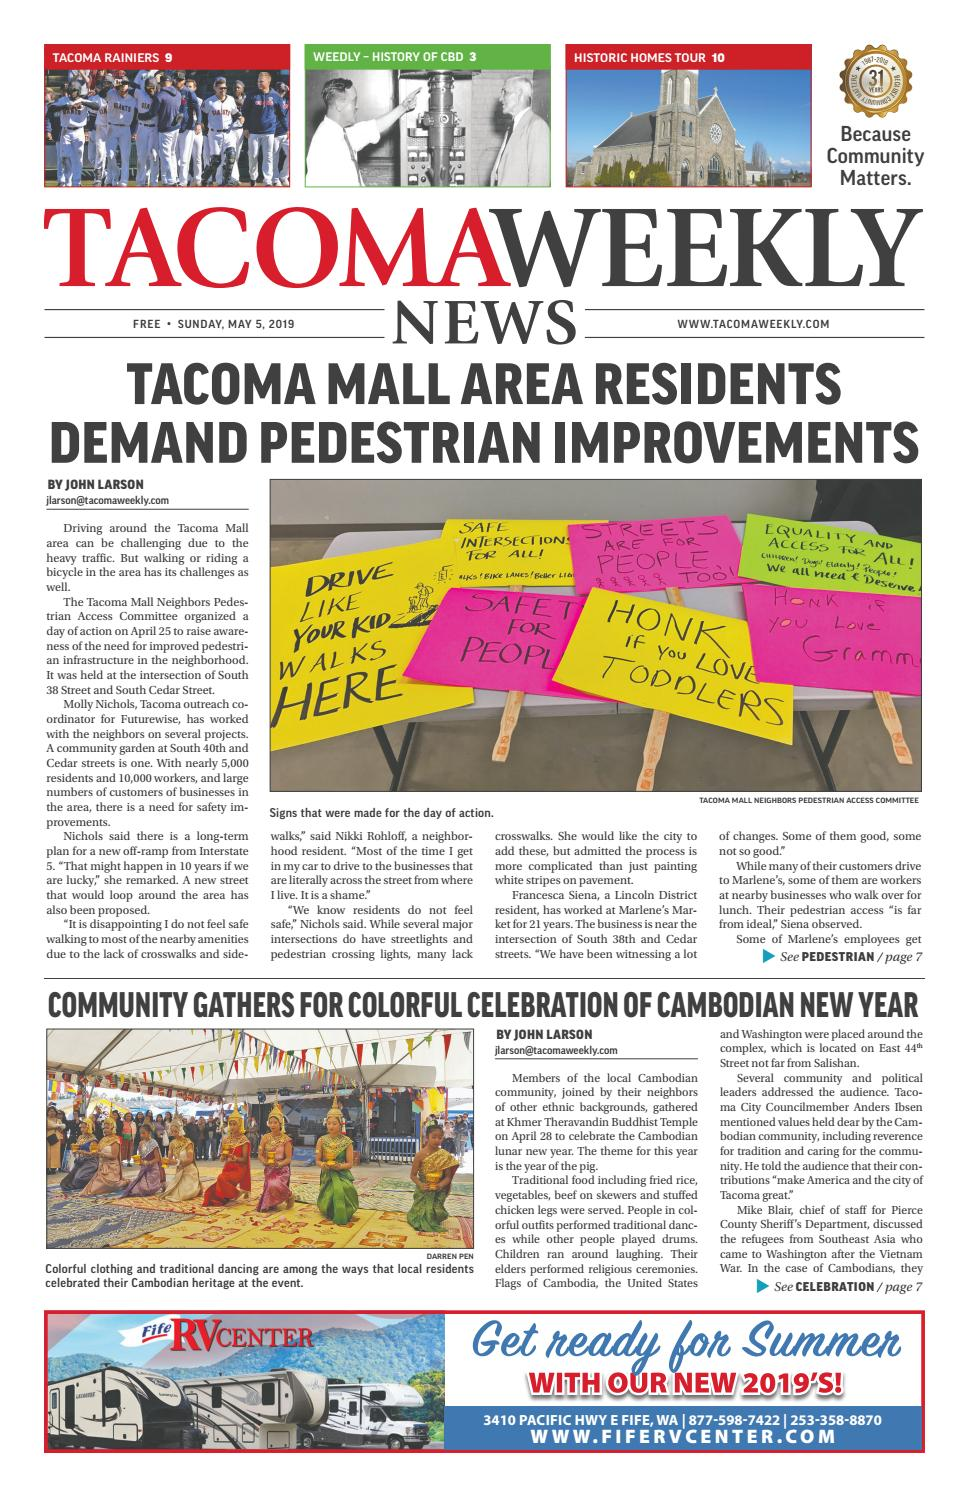 Tacoma Weekly 05 05 19 by Tacoma Weekly News - issuu